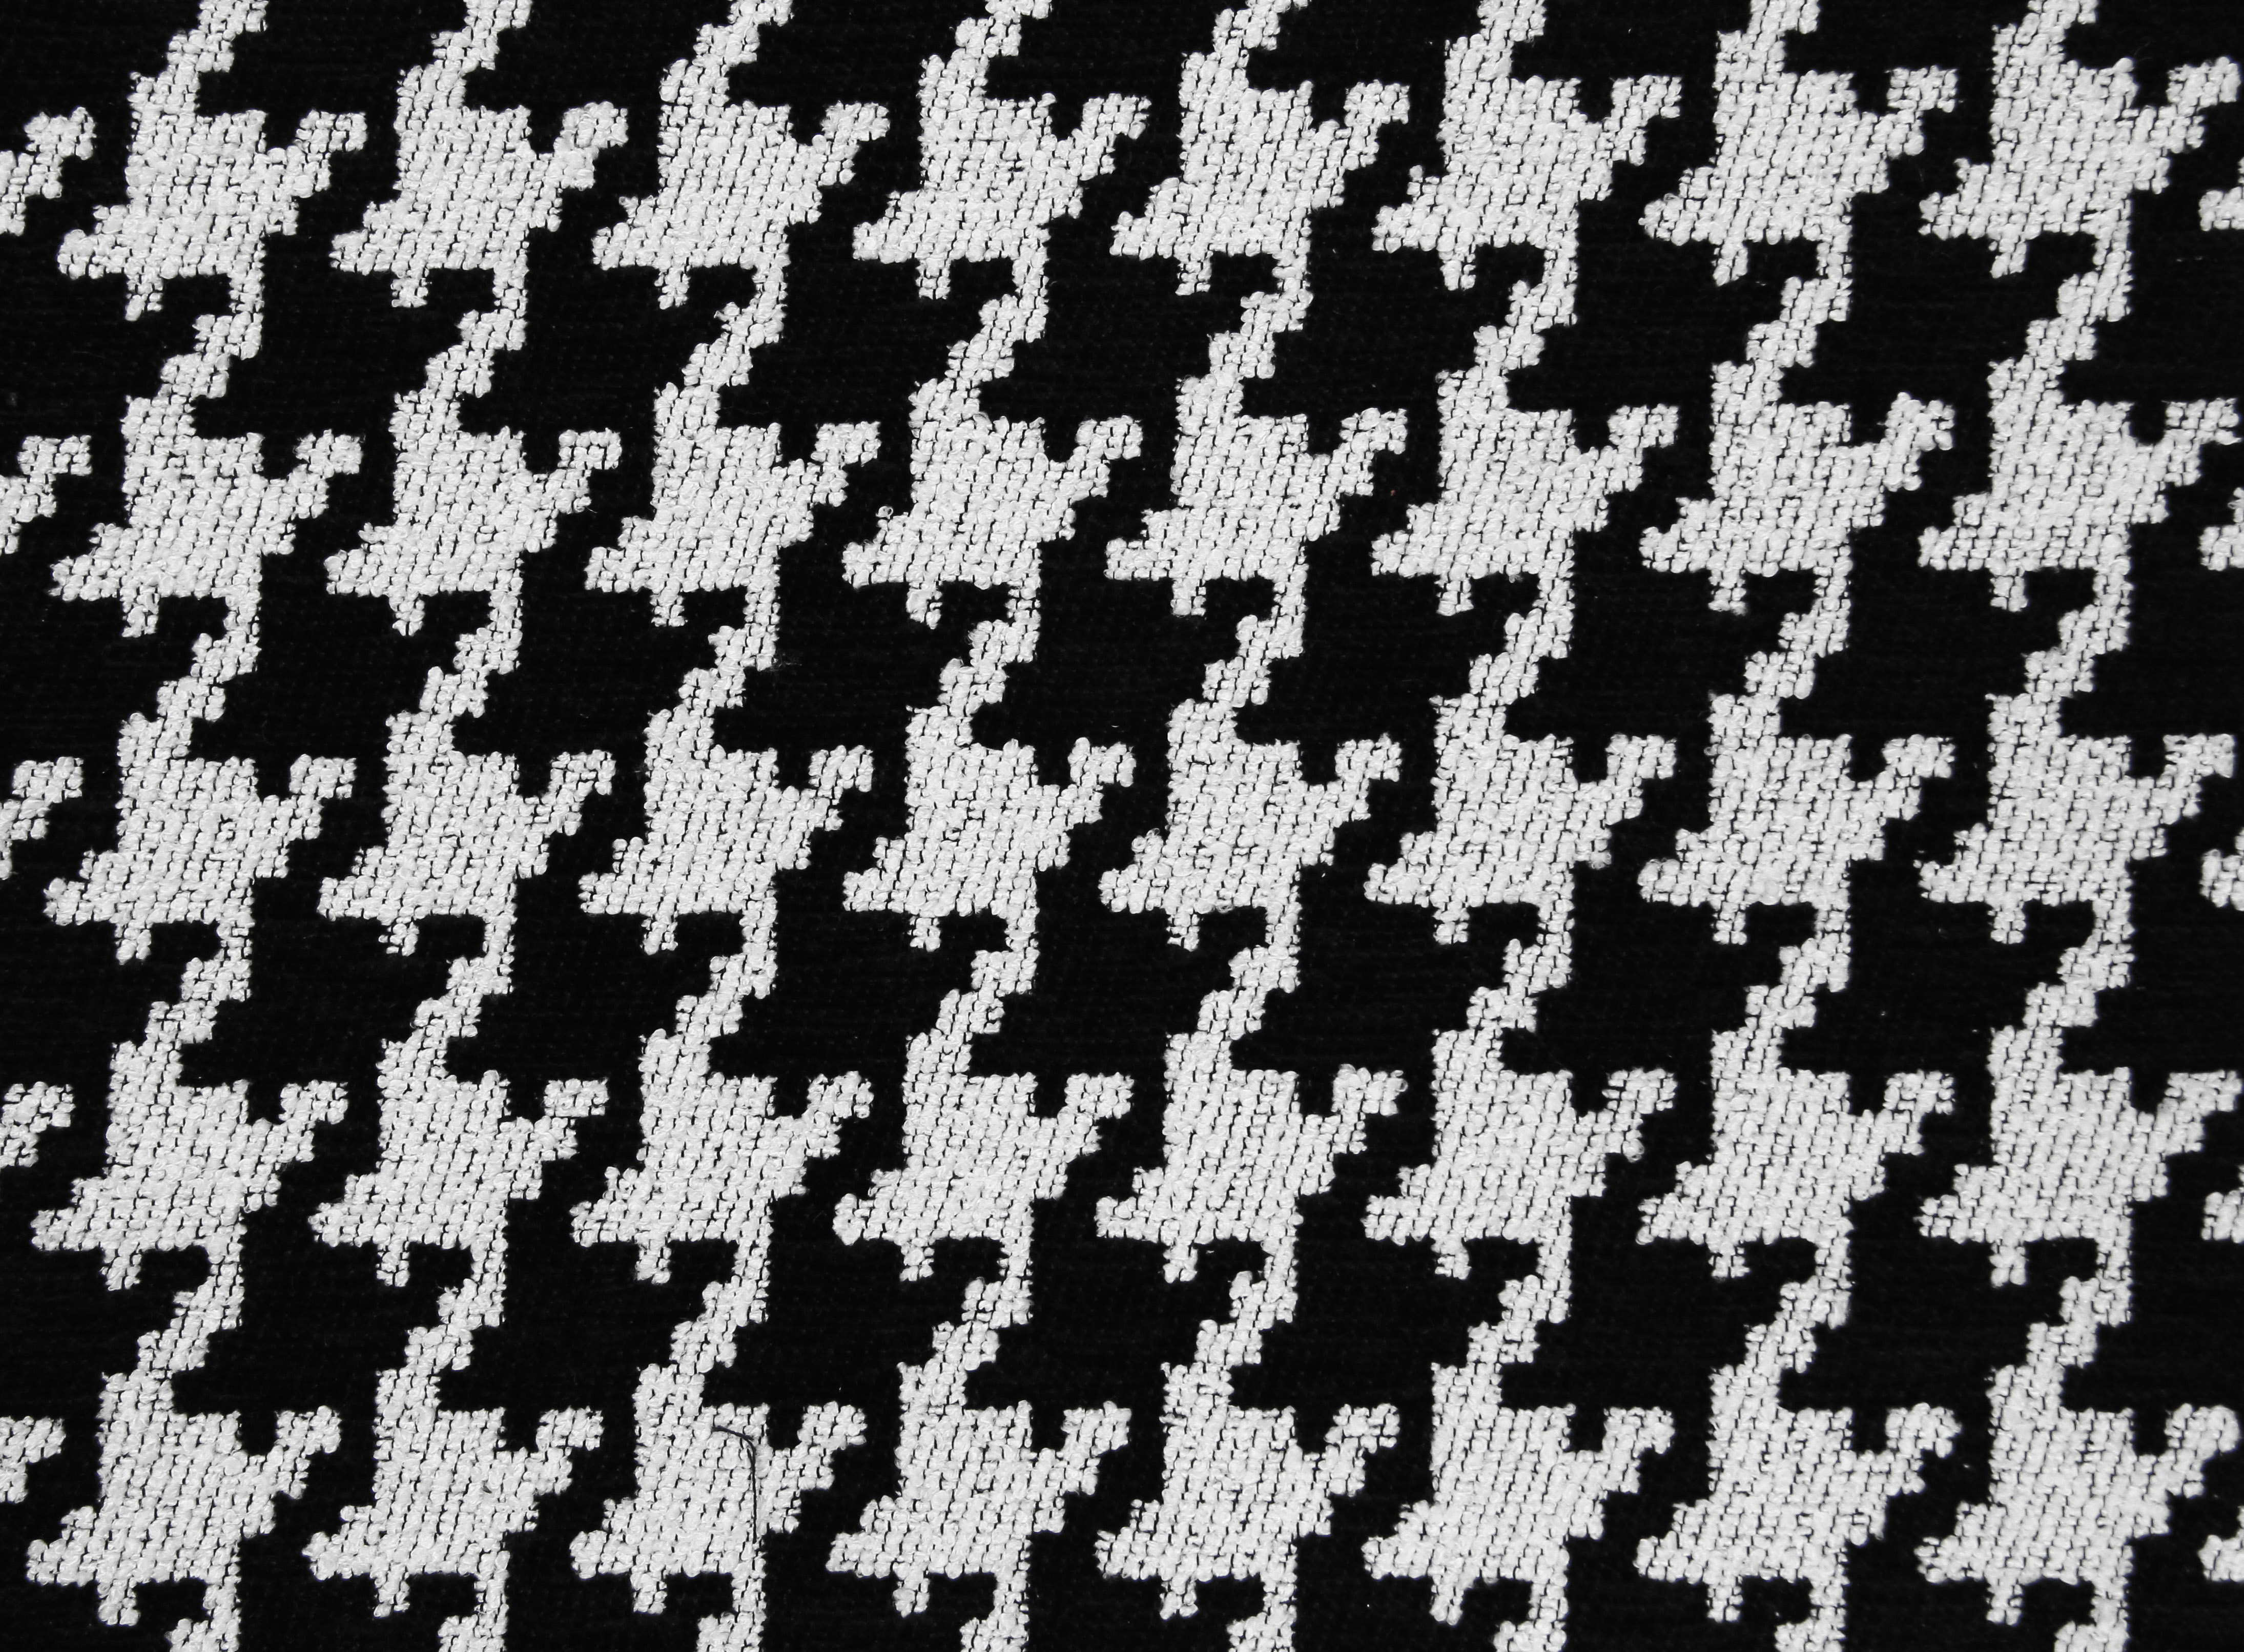 fabric texture retro print black white cloth design - TextureX- Free ... for White Fabric Texture Design  183qdu